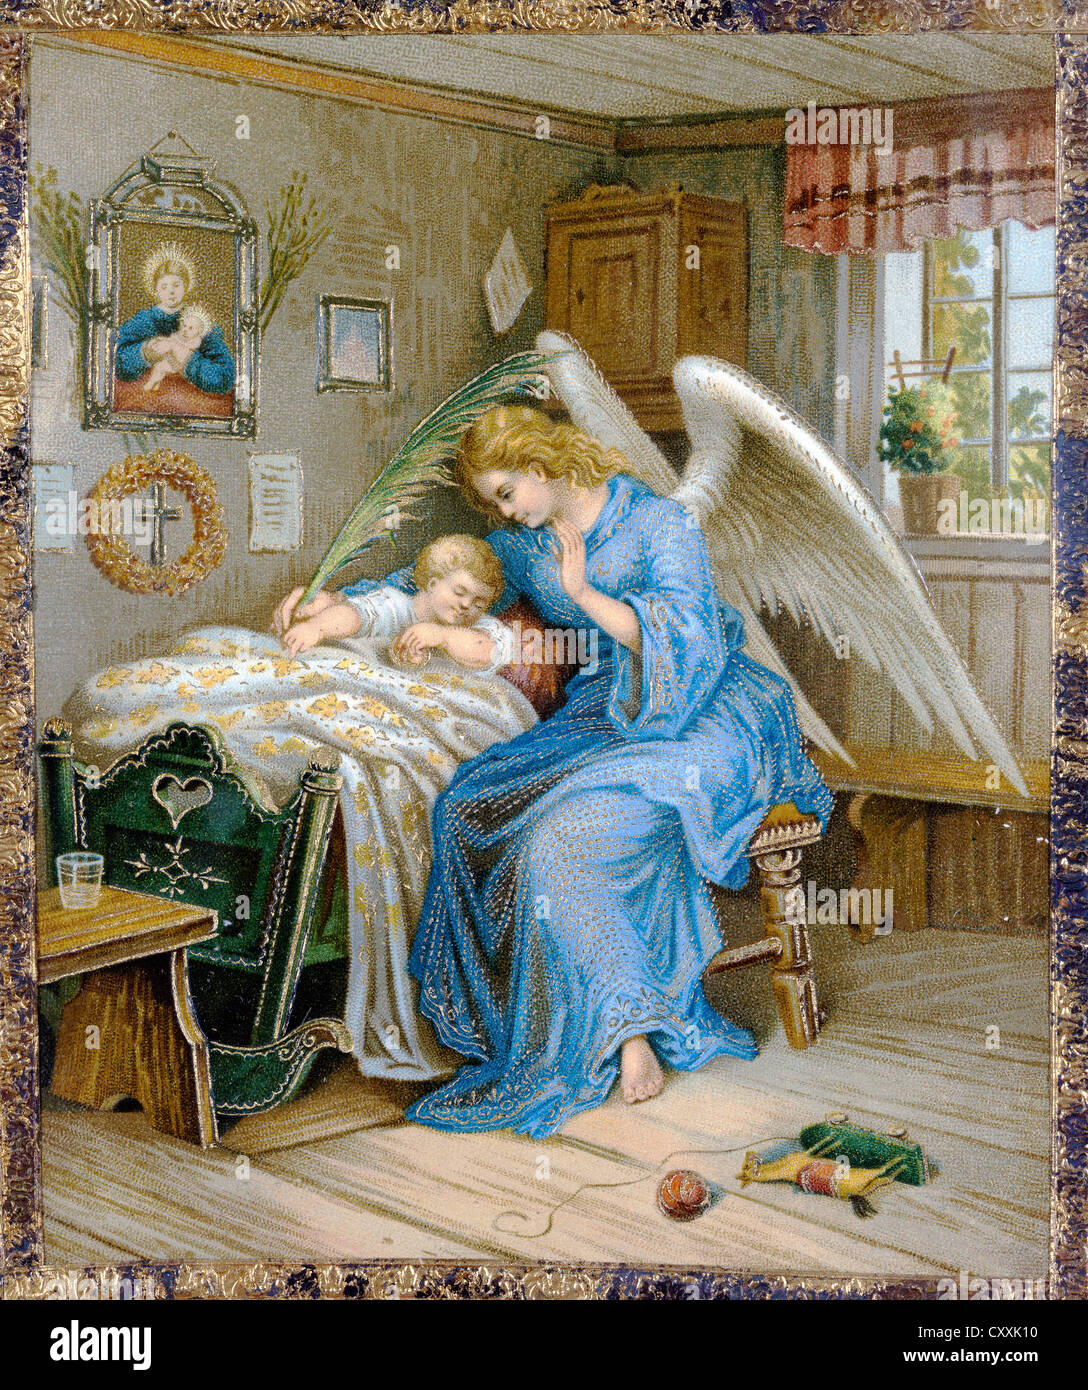 Guardian angel with a sleeping child, print, around 1900, in private hands - Stock Image